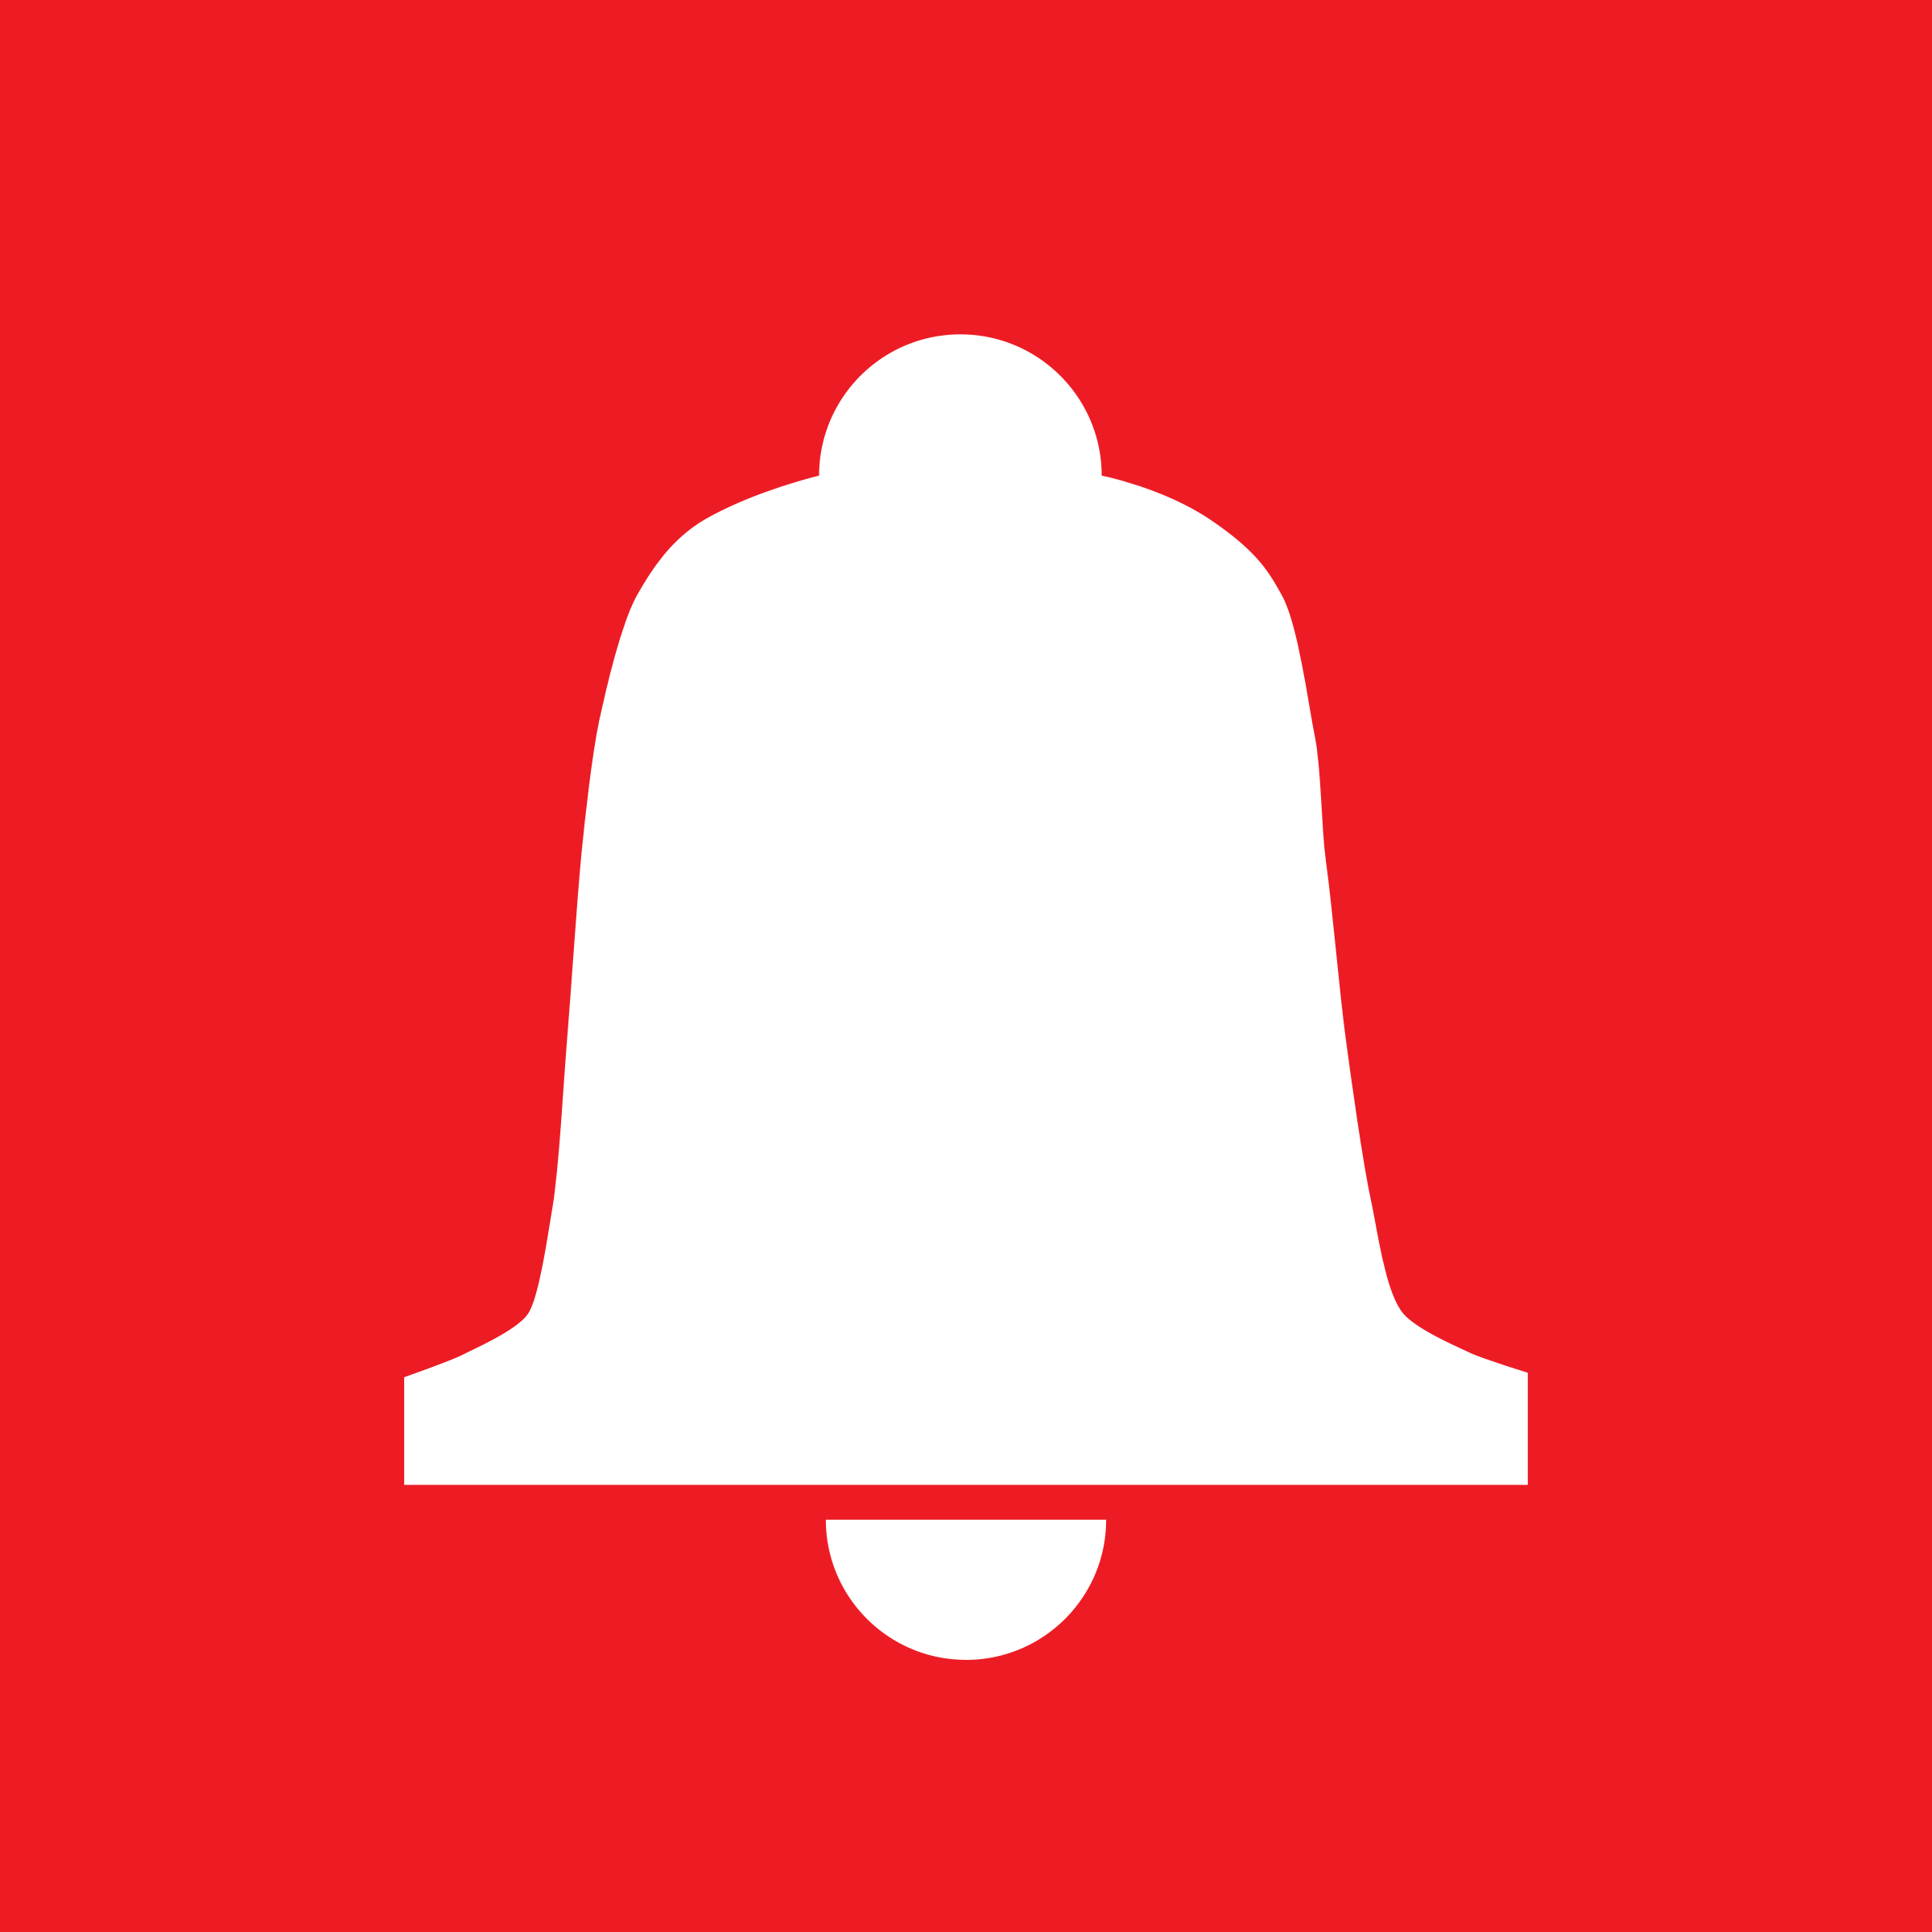 Alarm bell png. Icons free and downloads